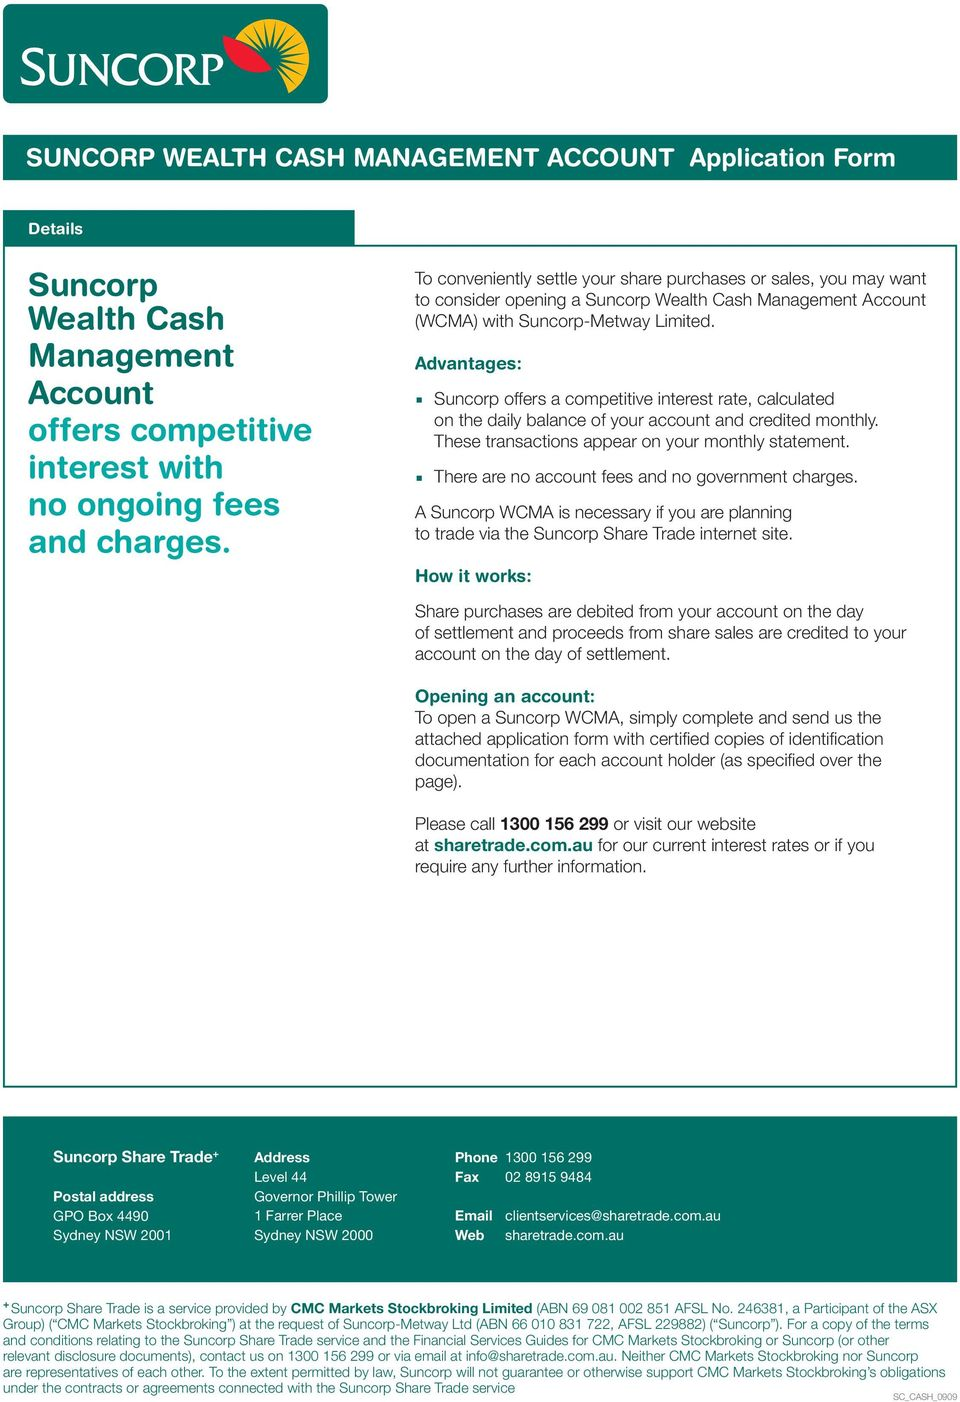 Advantages: Suncorp offers a competitive interest rate, calculated on the daily balance of your account and credited monthly. These transactions appear on your monthly statement.